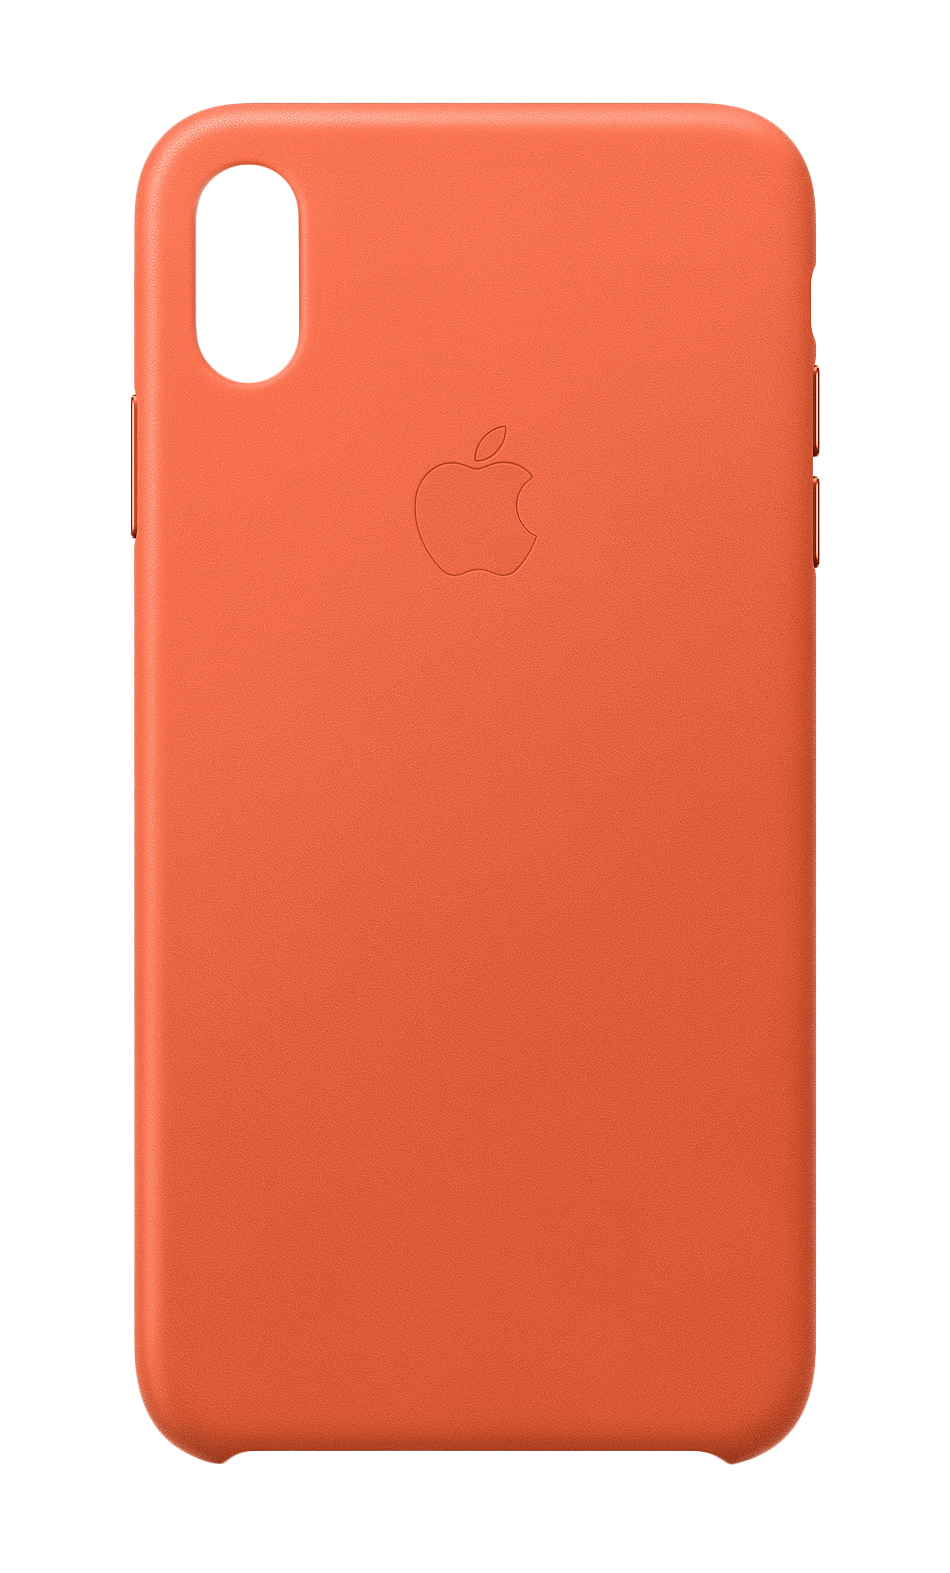 Apple MVFY2ZM/A mobile phone case Cover